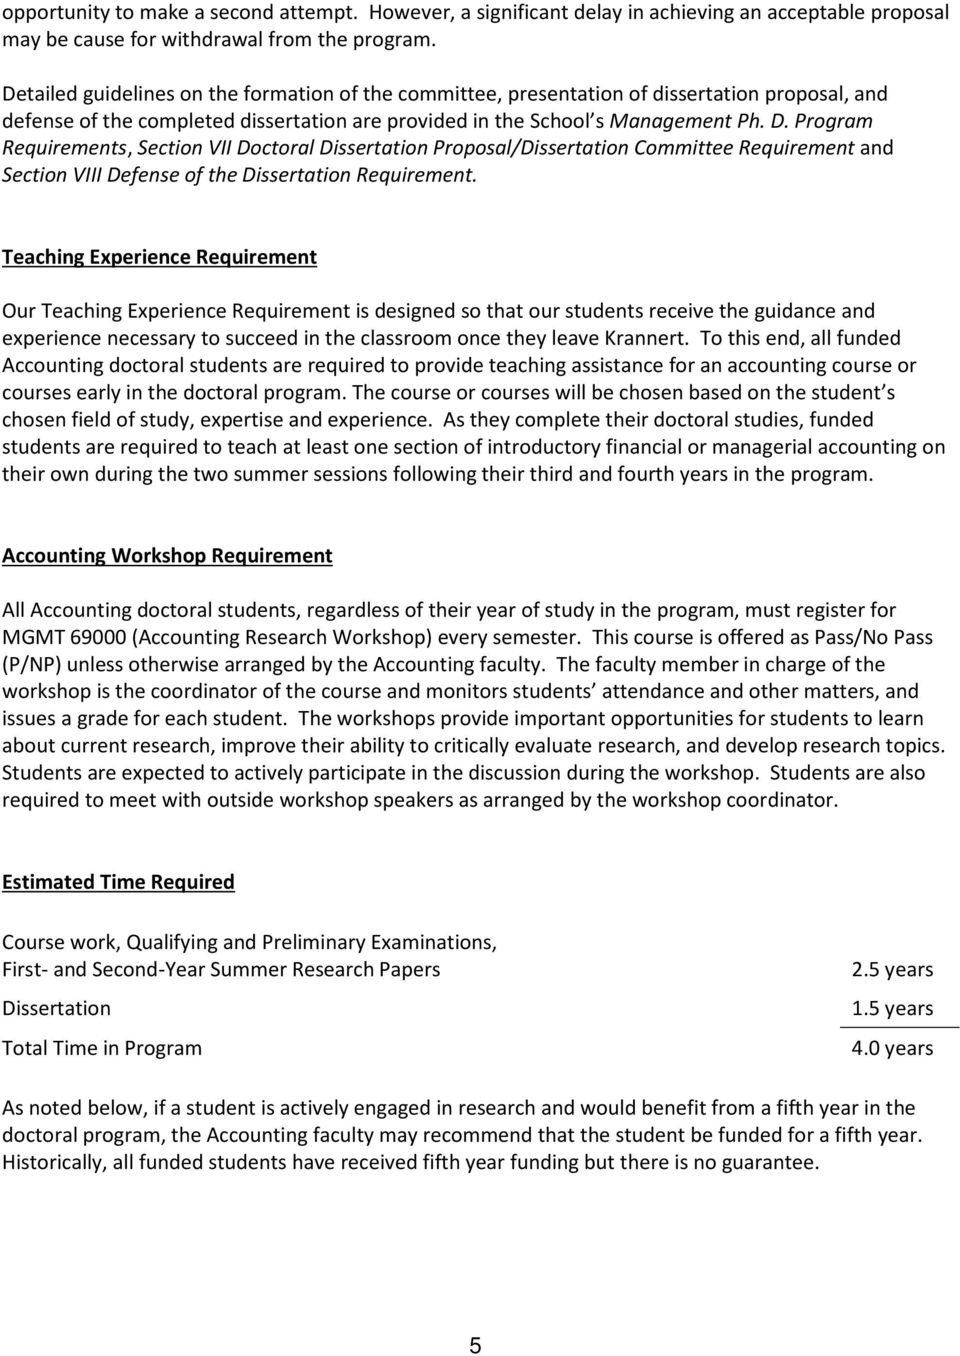 Program Requirements, Section VII Doctoral Dissertation Proposal/Dissertation Committee Requirement and Section VIII Defense of the Dissertation Requirement.